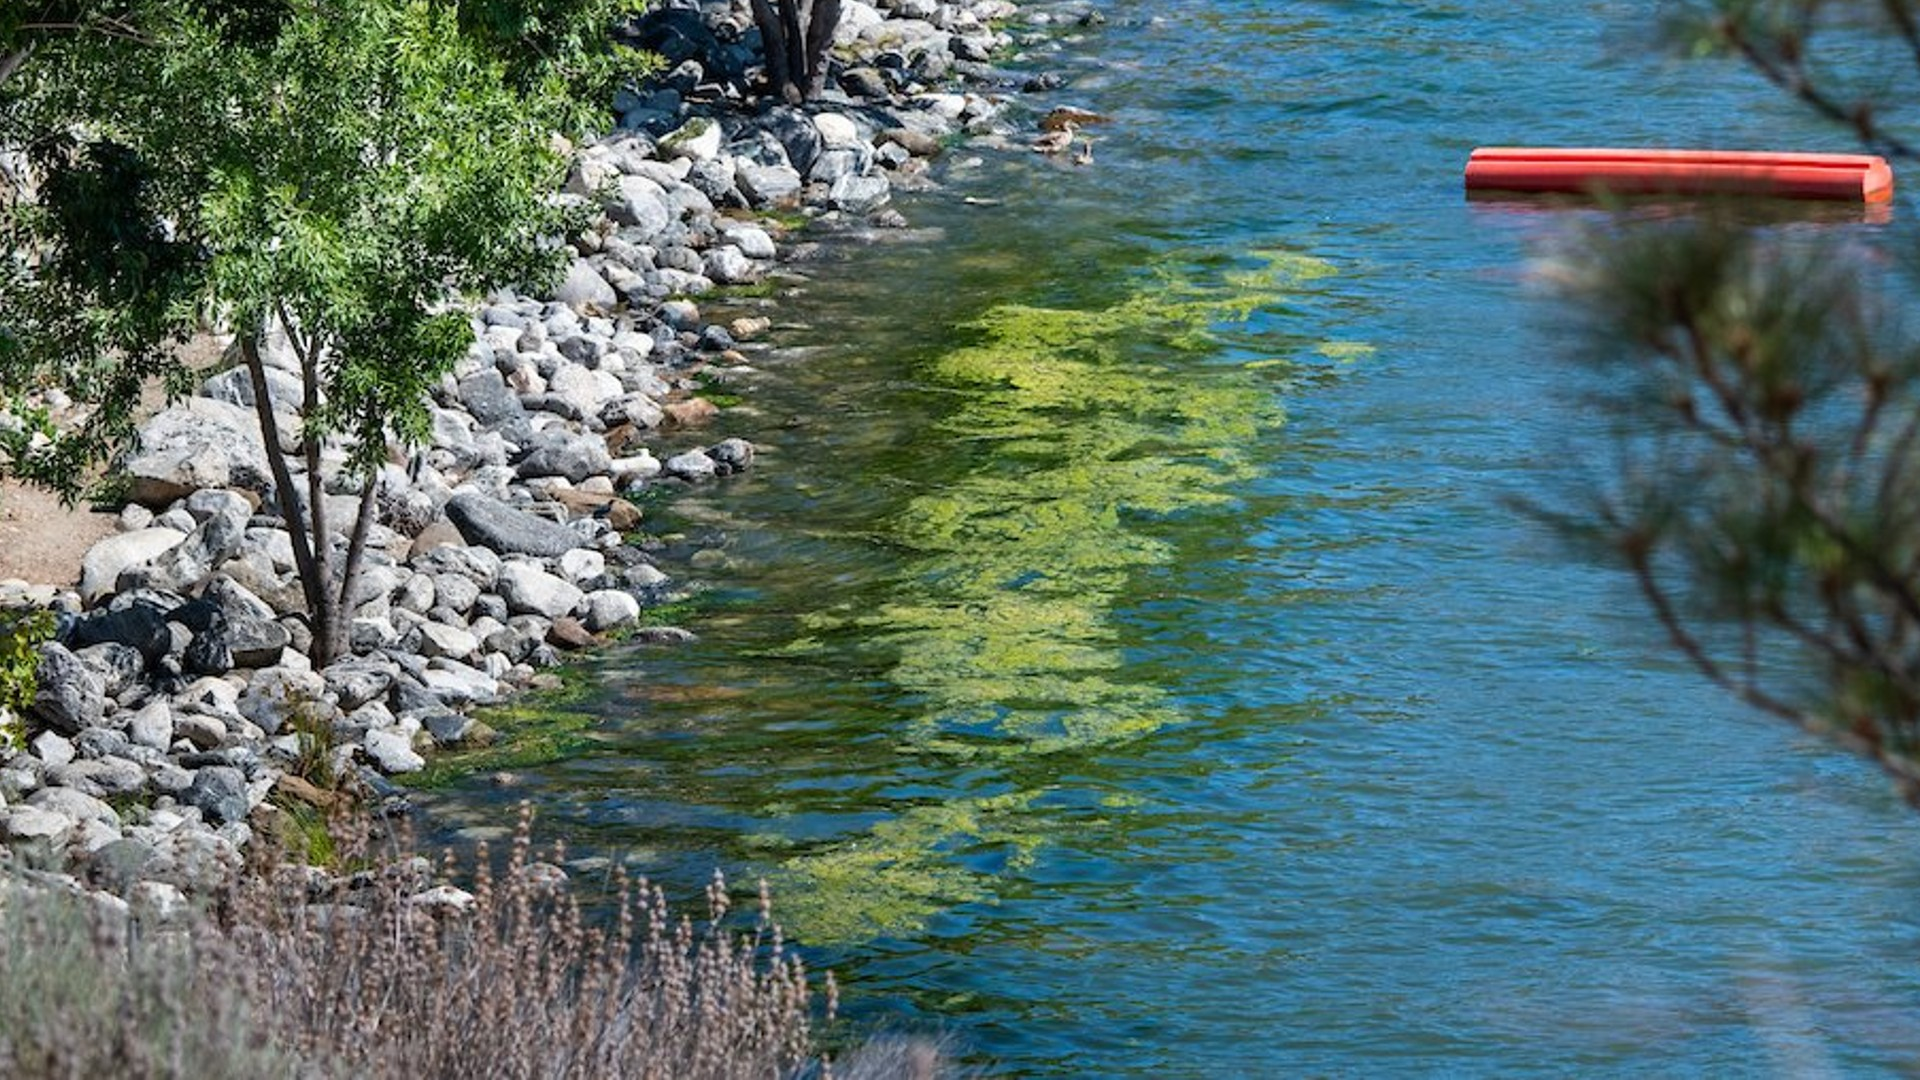 Algae in Pyramid Lake is seen in an image tweeted by the California Department of Water Resources on Sept. 22, 2021.